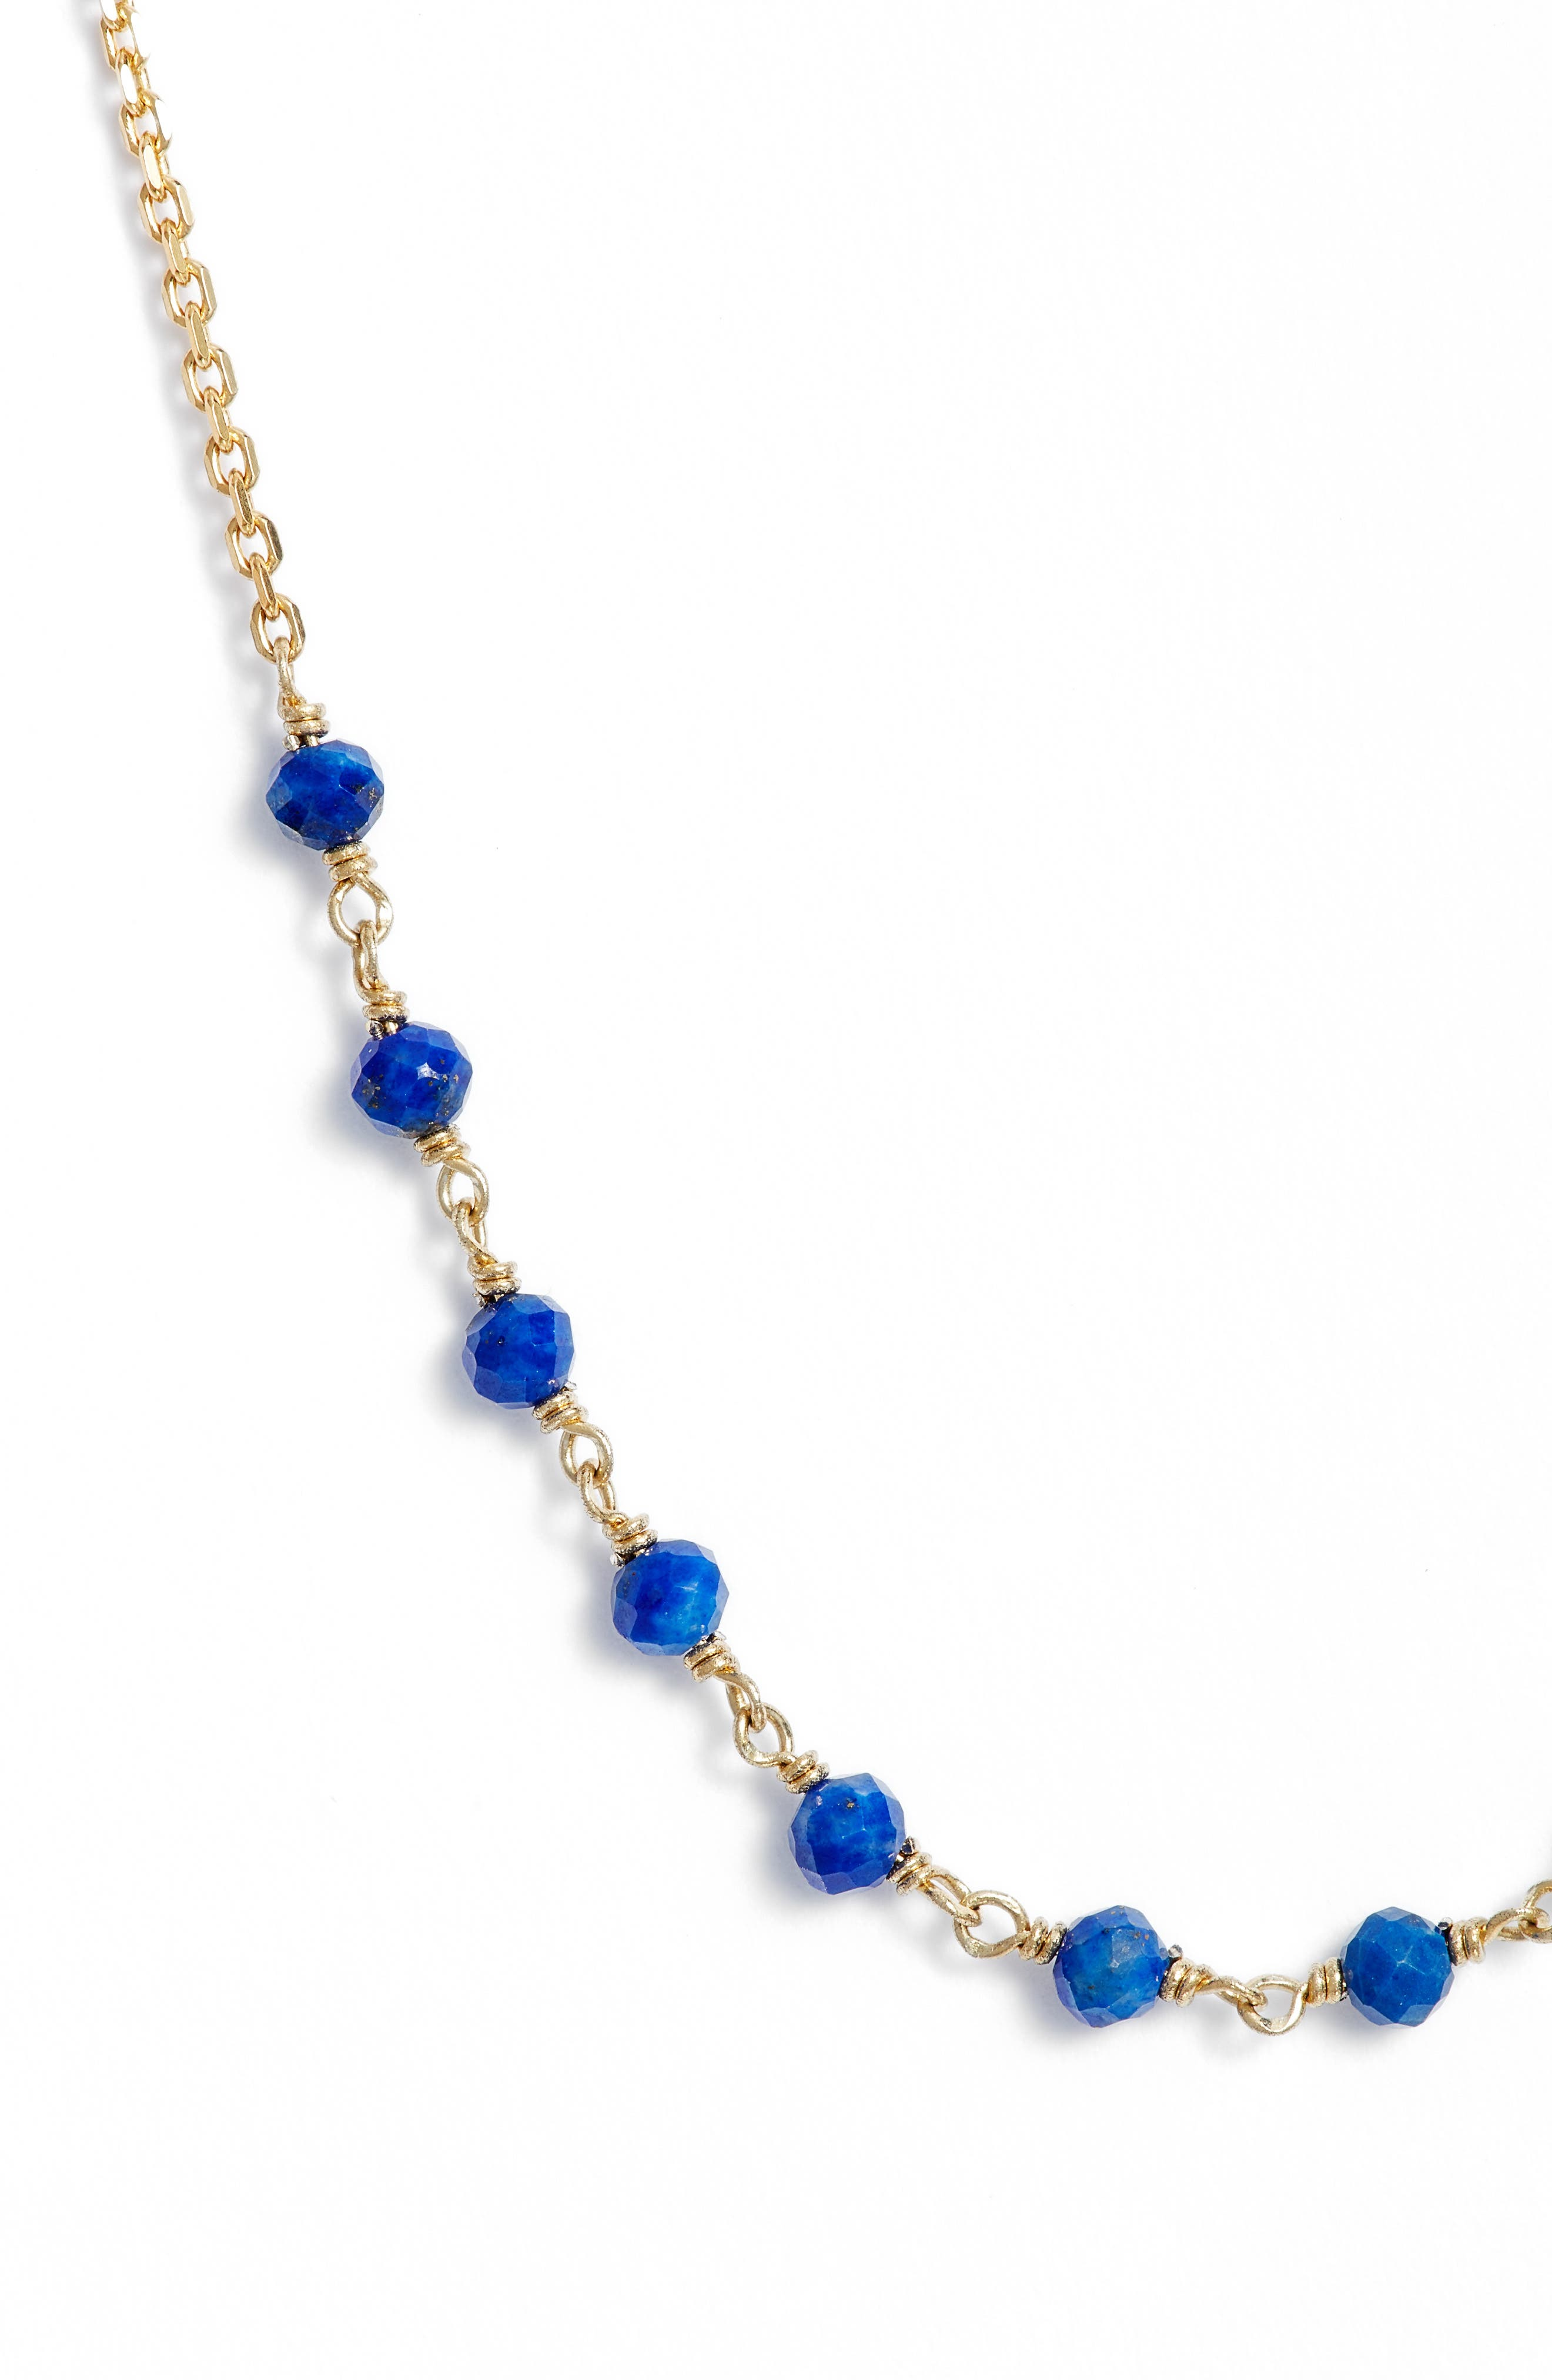 Gold & Bead Necklace,                             Main thumbnail 1, color,                             710